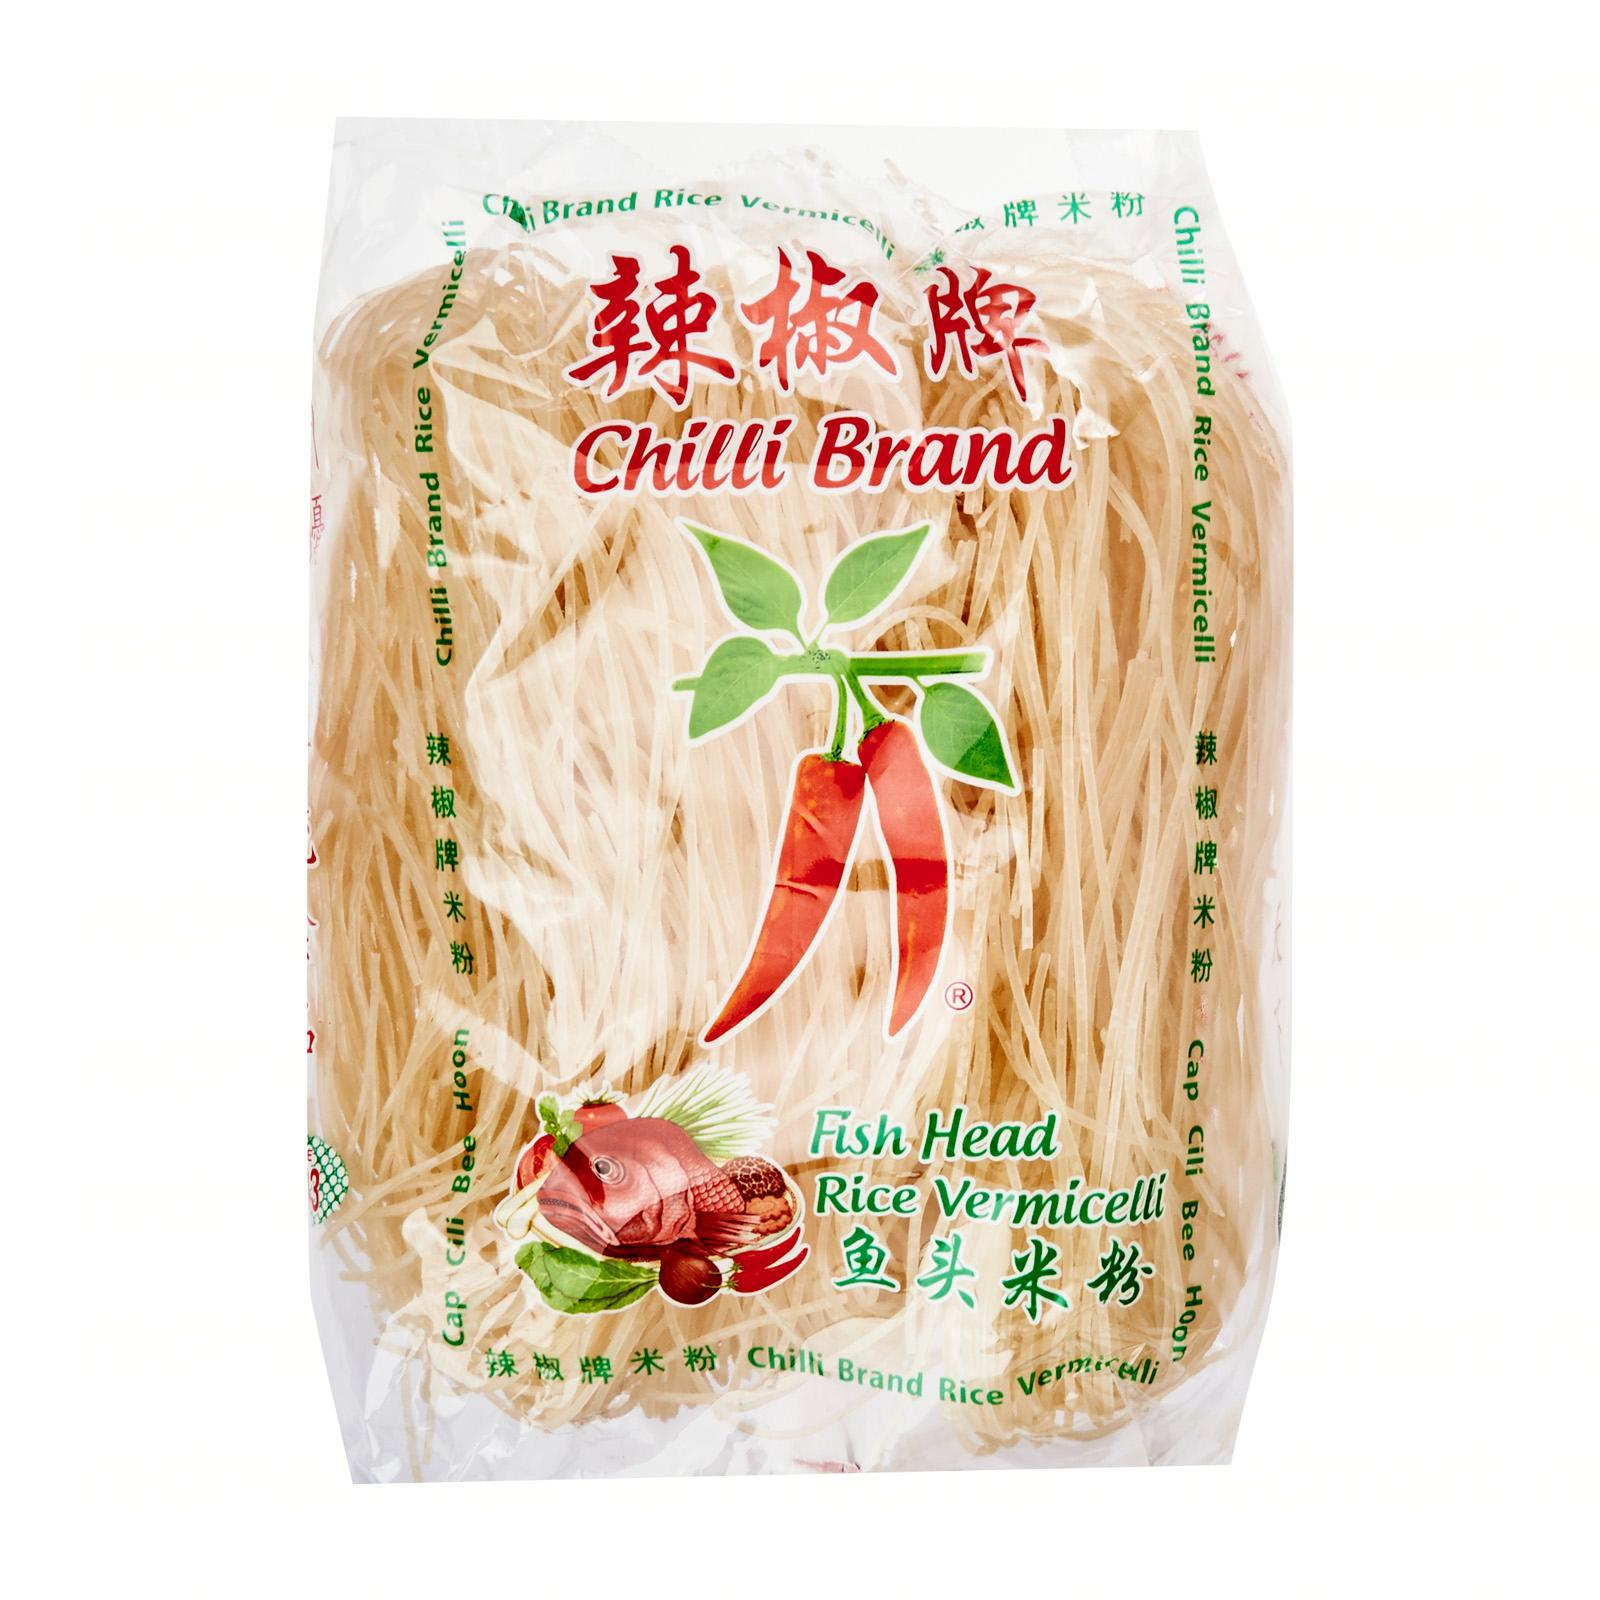 Chilli Brand Fish Head Beehoon Vermicelli - By FOOD SERVICE